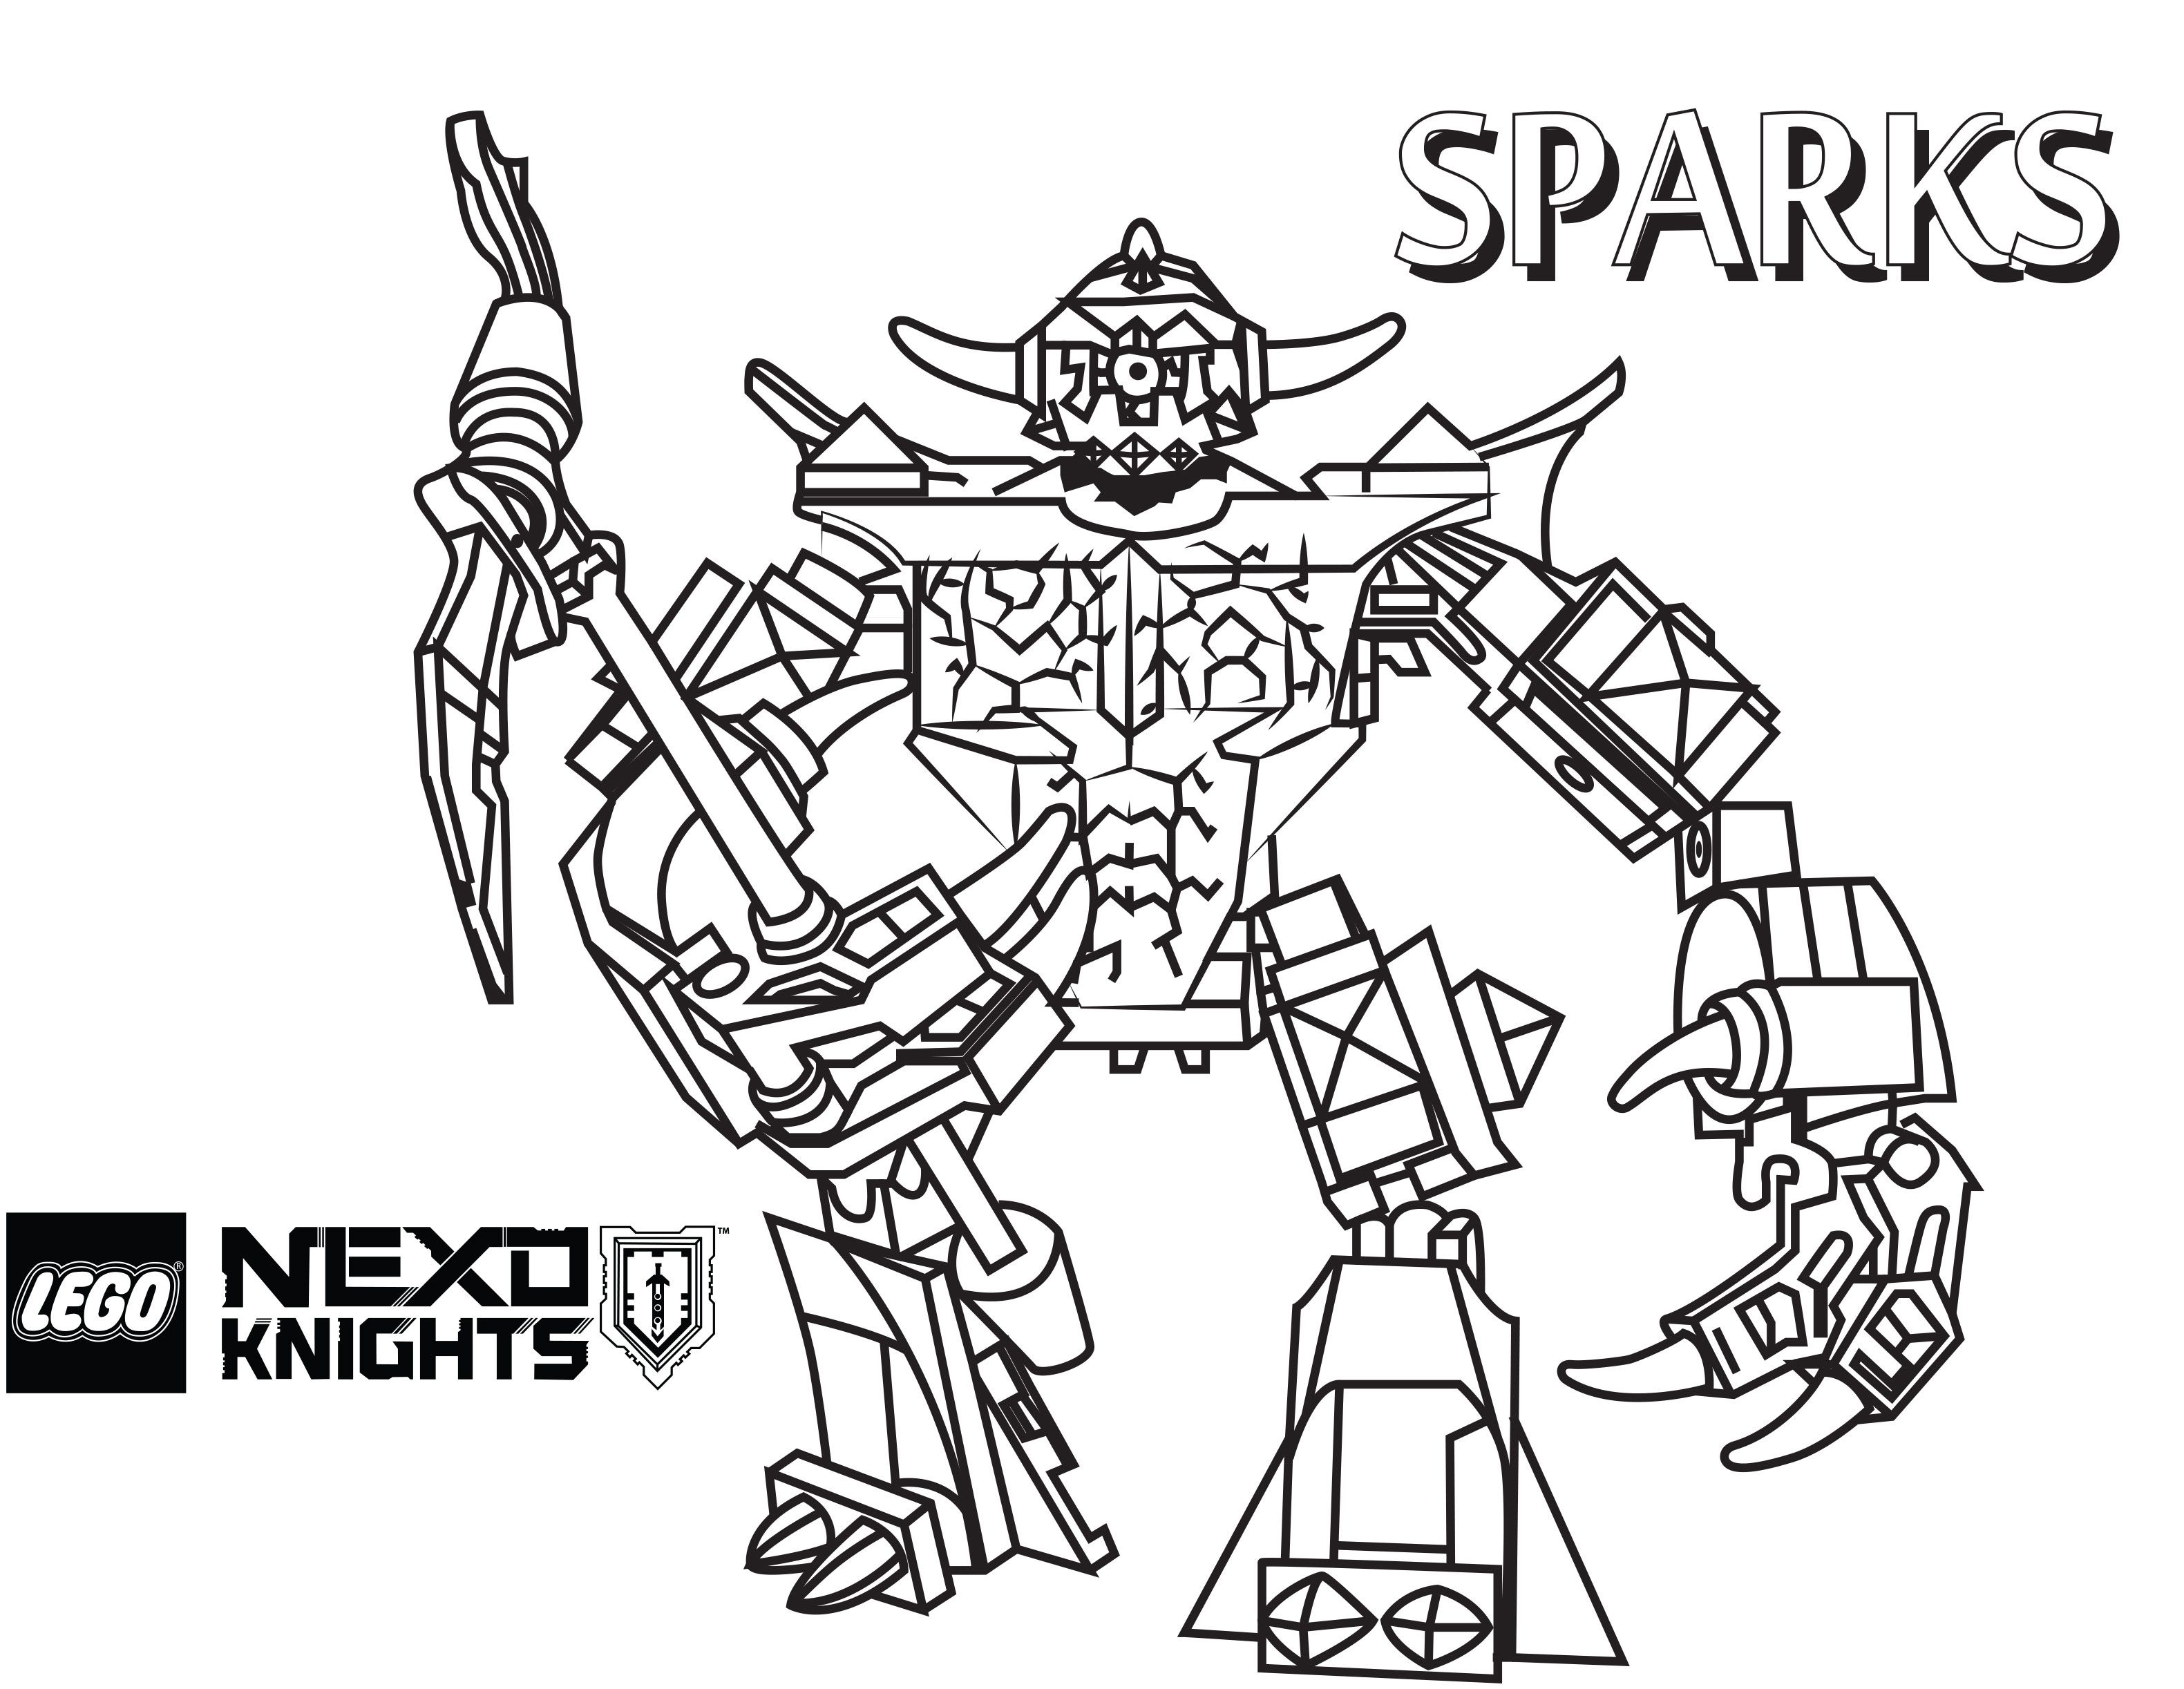 Nexo Knights Monster Ausmalbilder : Nexo Lego Knights Coloring Pages Crafts Pinterest